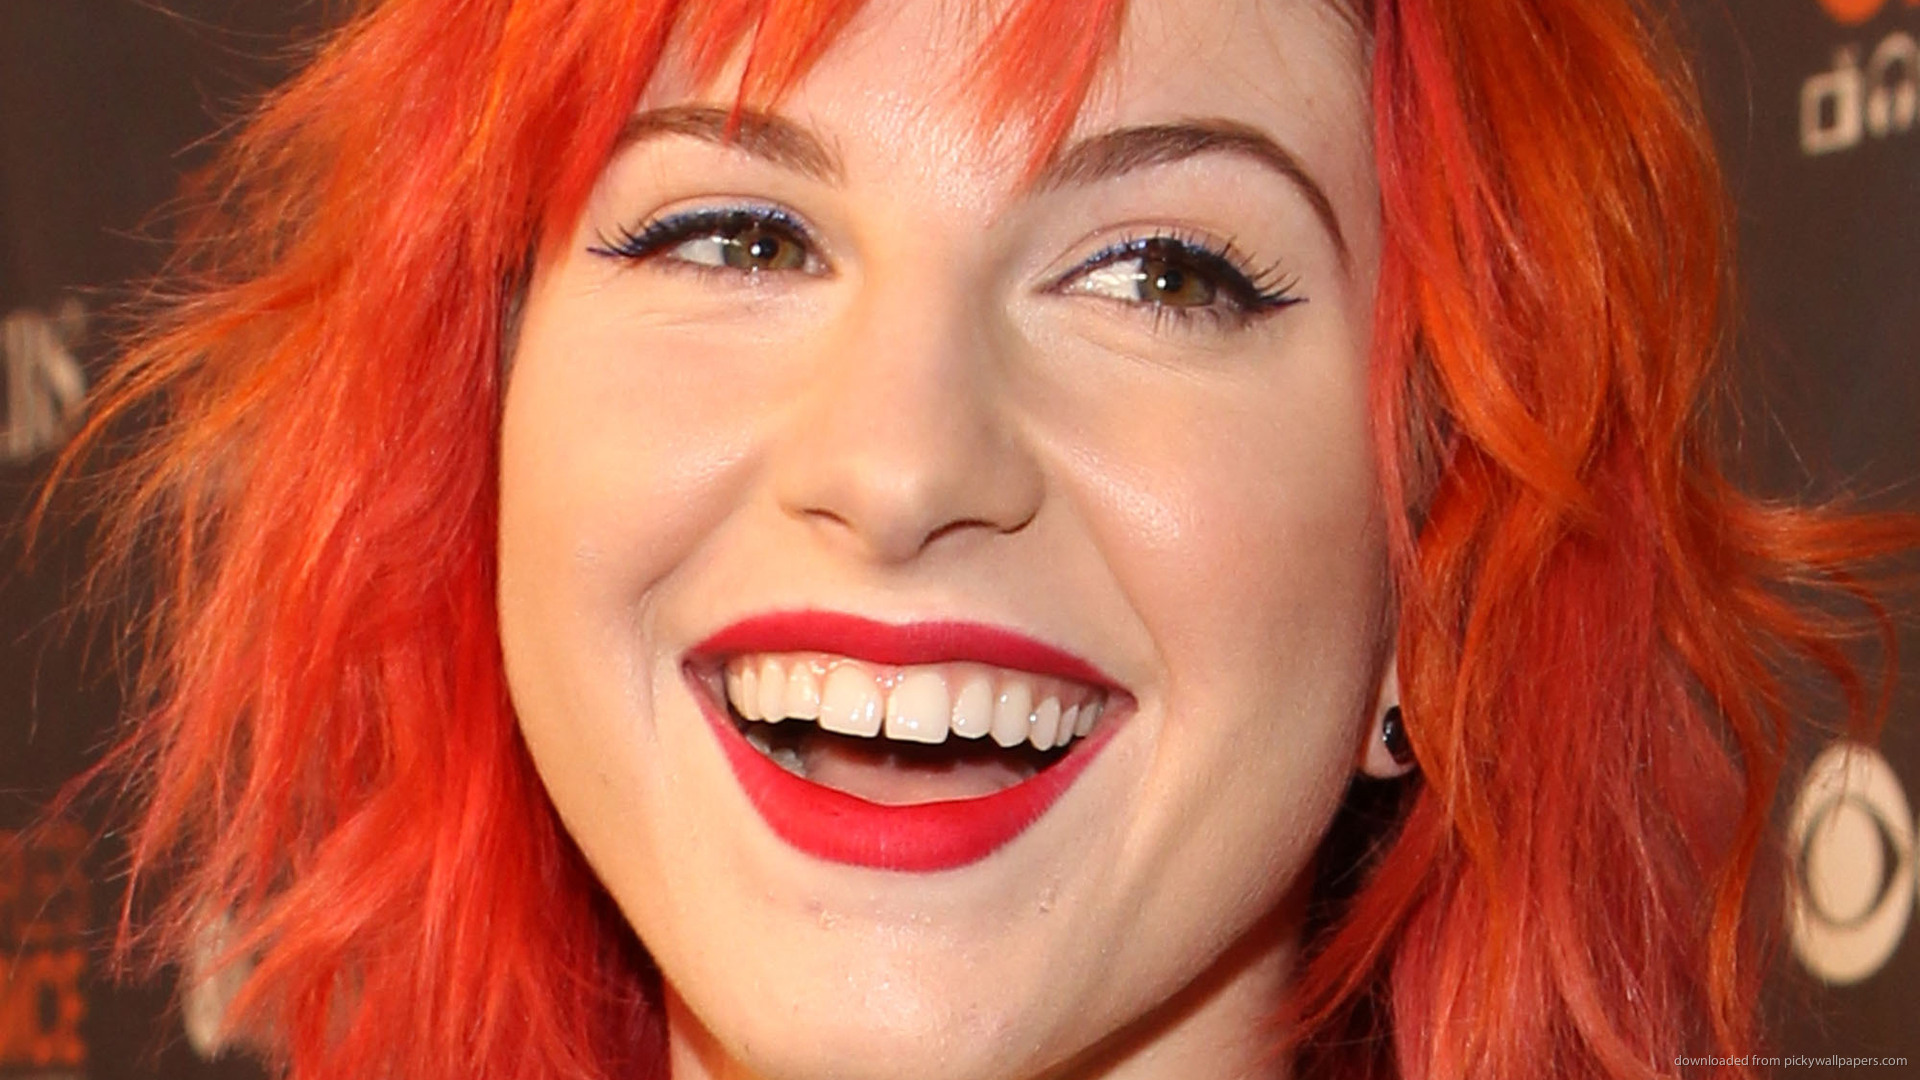 hayley williams free hd - photo #45